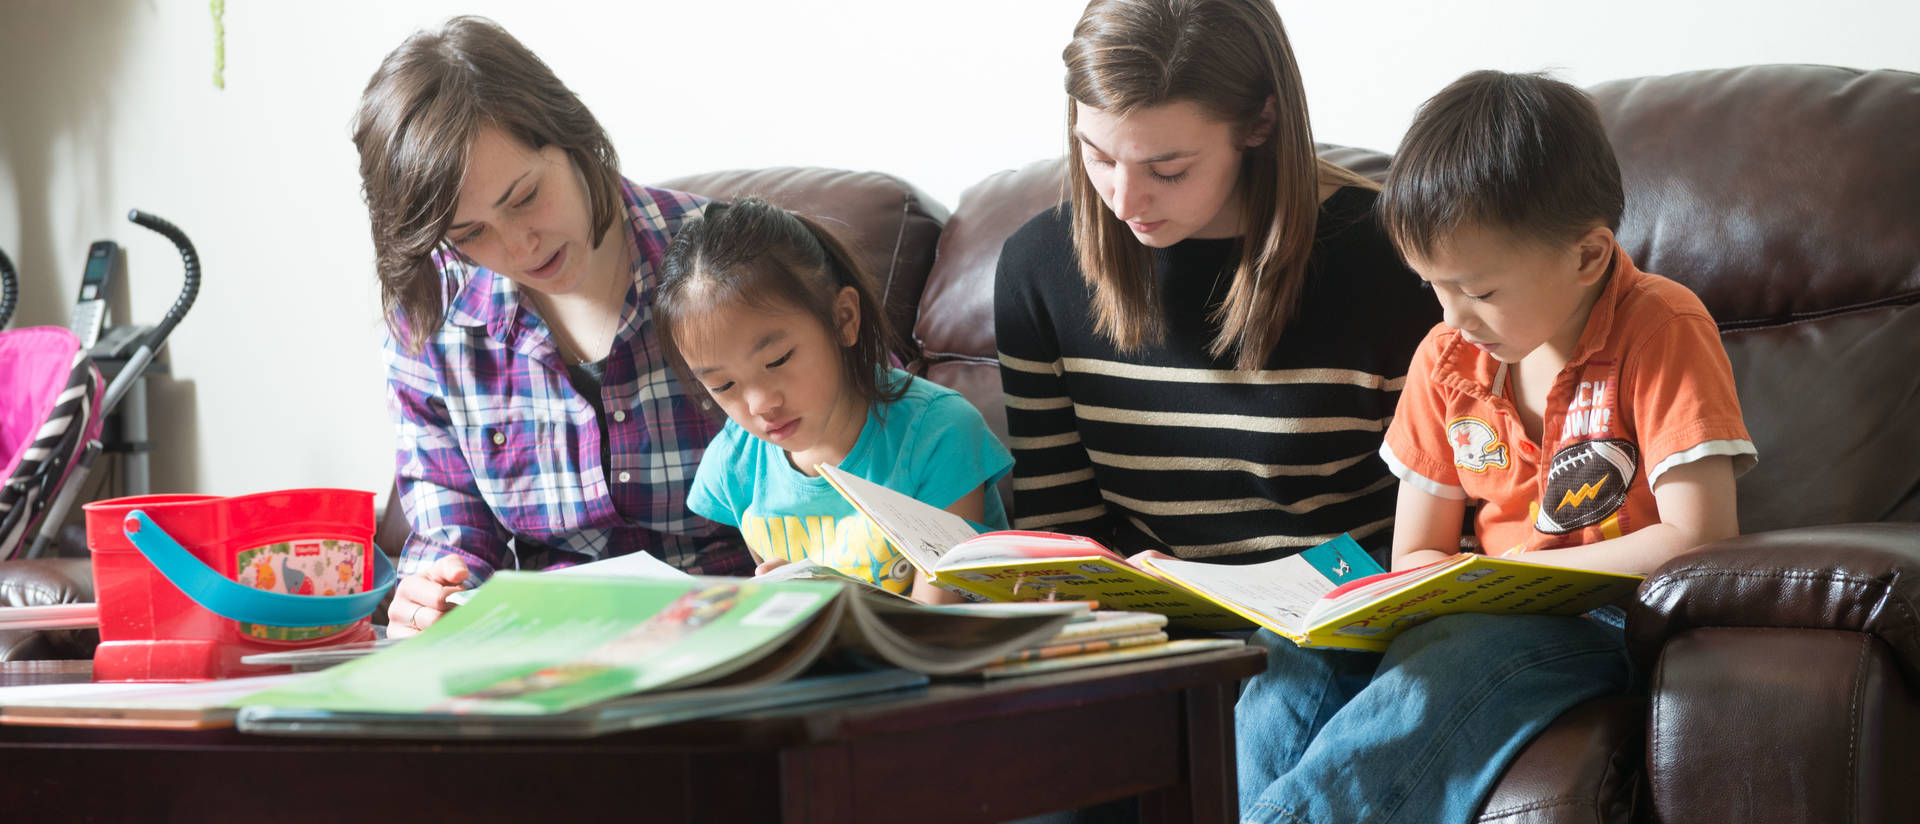 Students in a home with young kids for reading partners